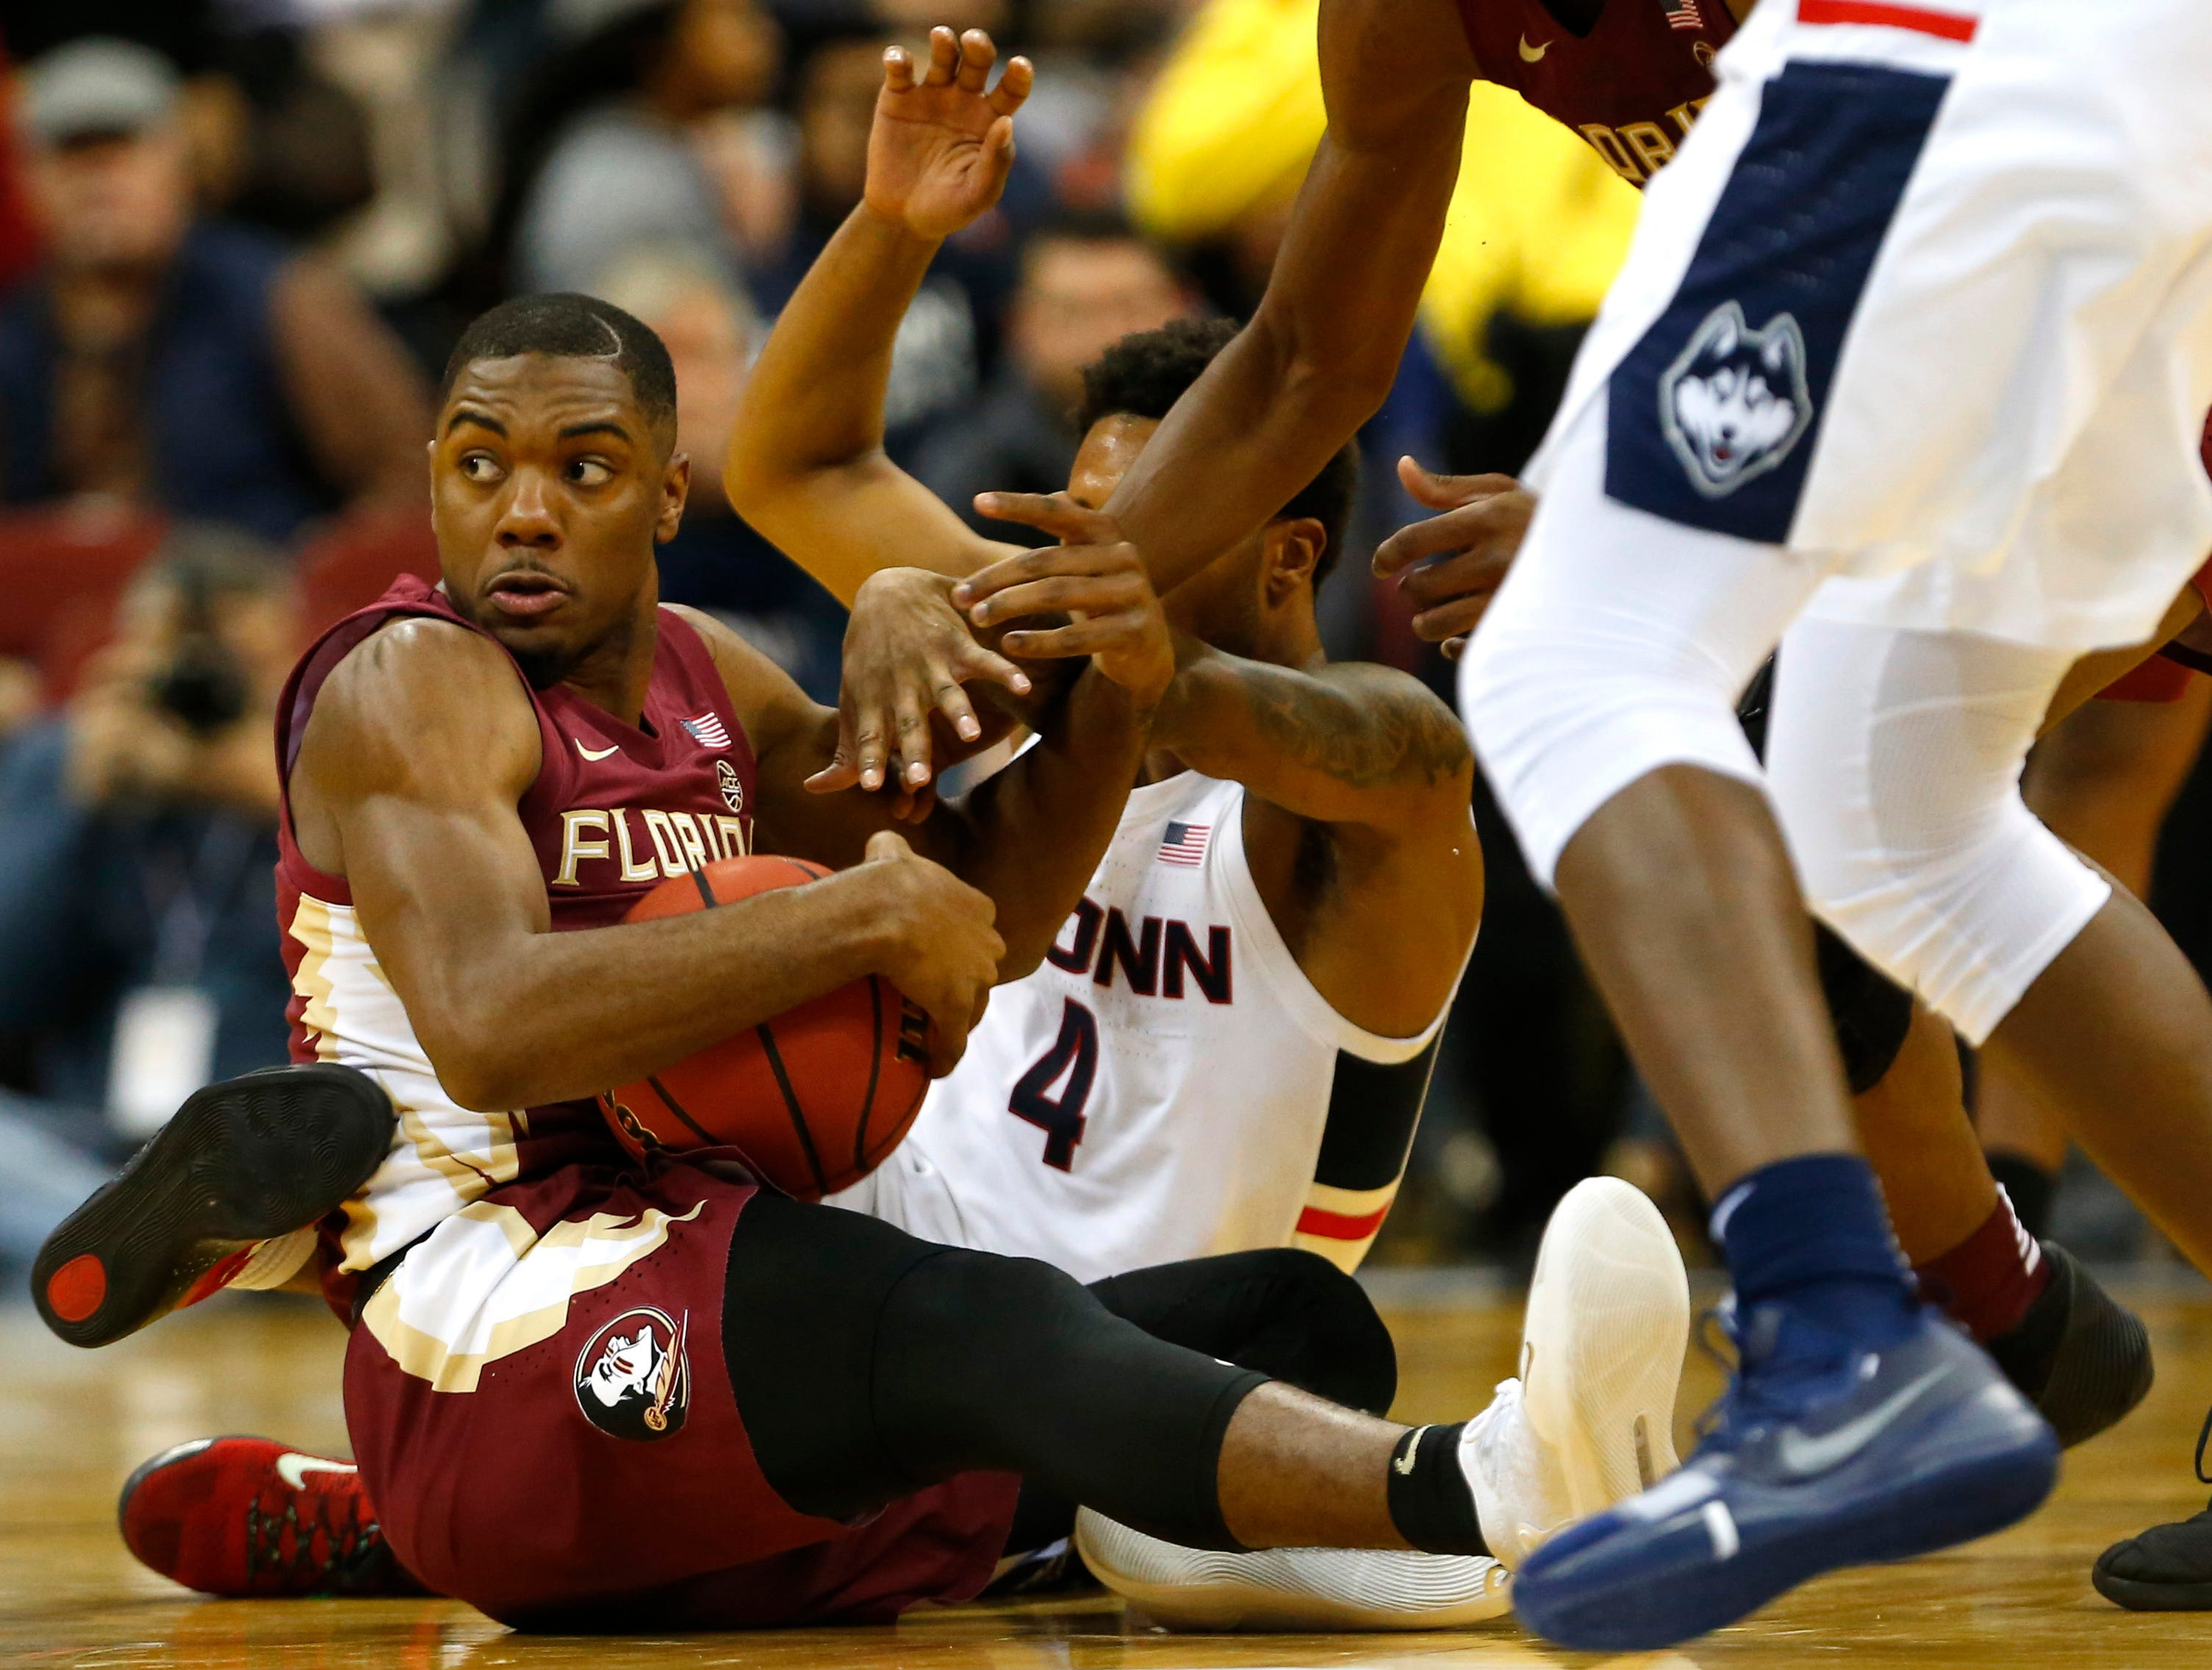 Dec 8, 2018; Newark, NJ, USA; Florida State Seminoles guard Trent Forrest (3) takes a loose ball f4om Connecticut Huskies guard Jalen Adams (4) during the first half at Prudential Center. Mandatory Credit: Noah K. Murray-USA TODAY Sports